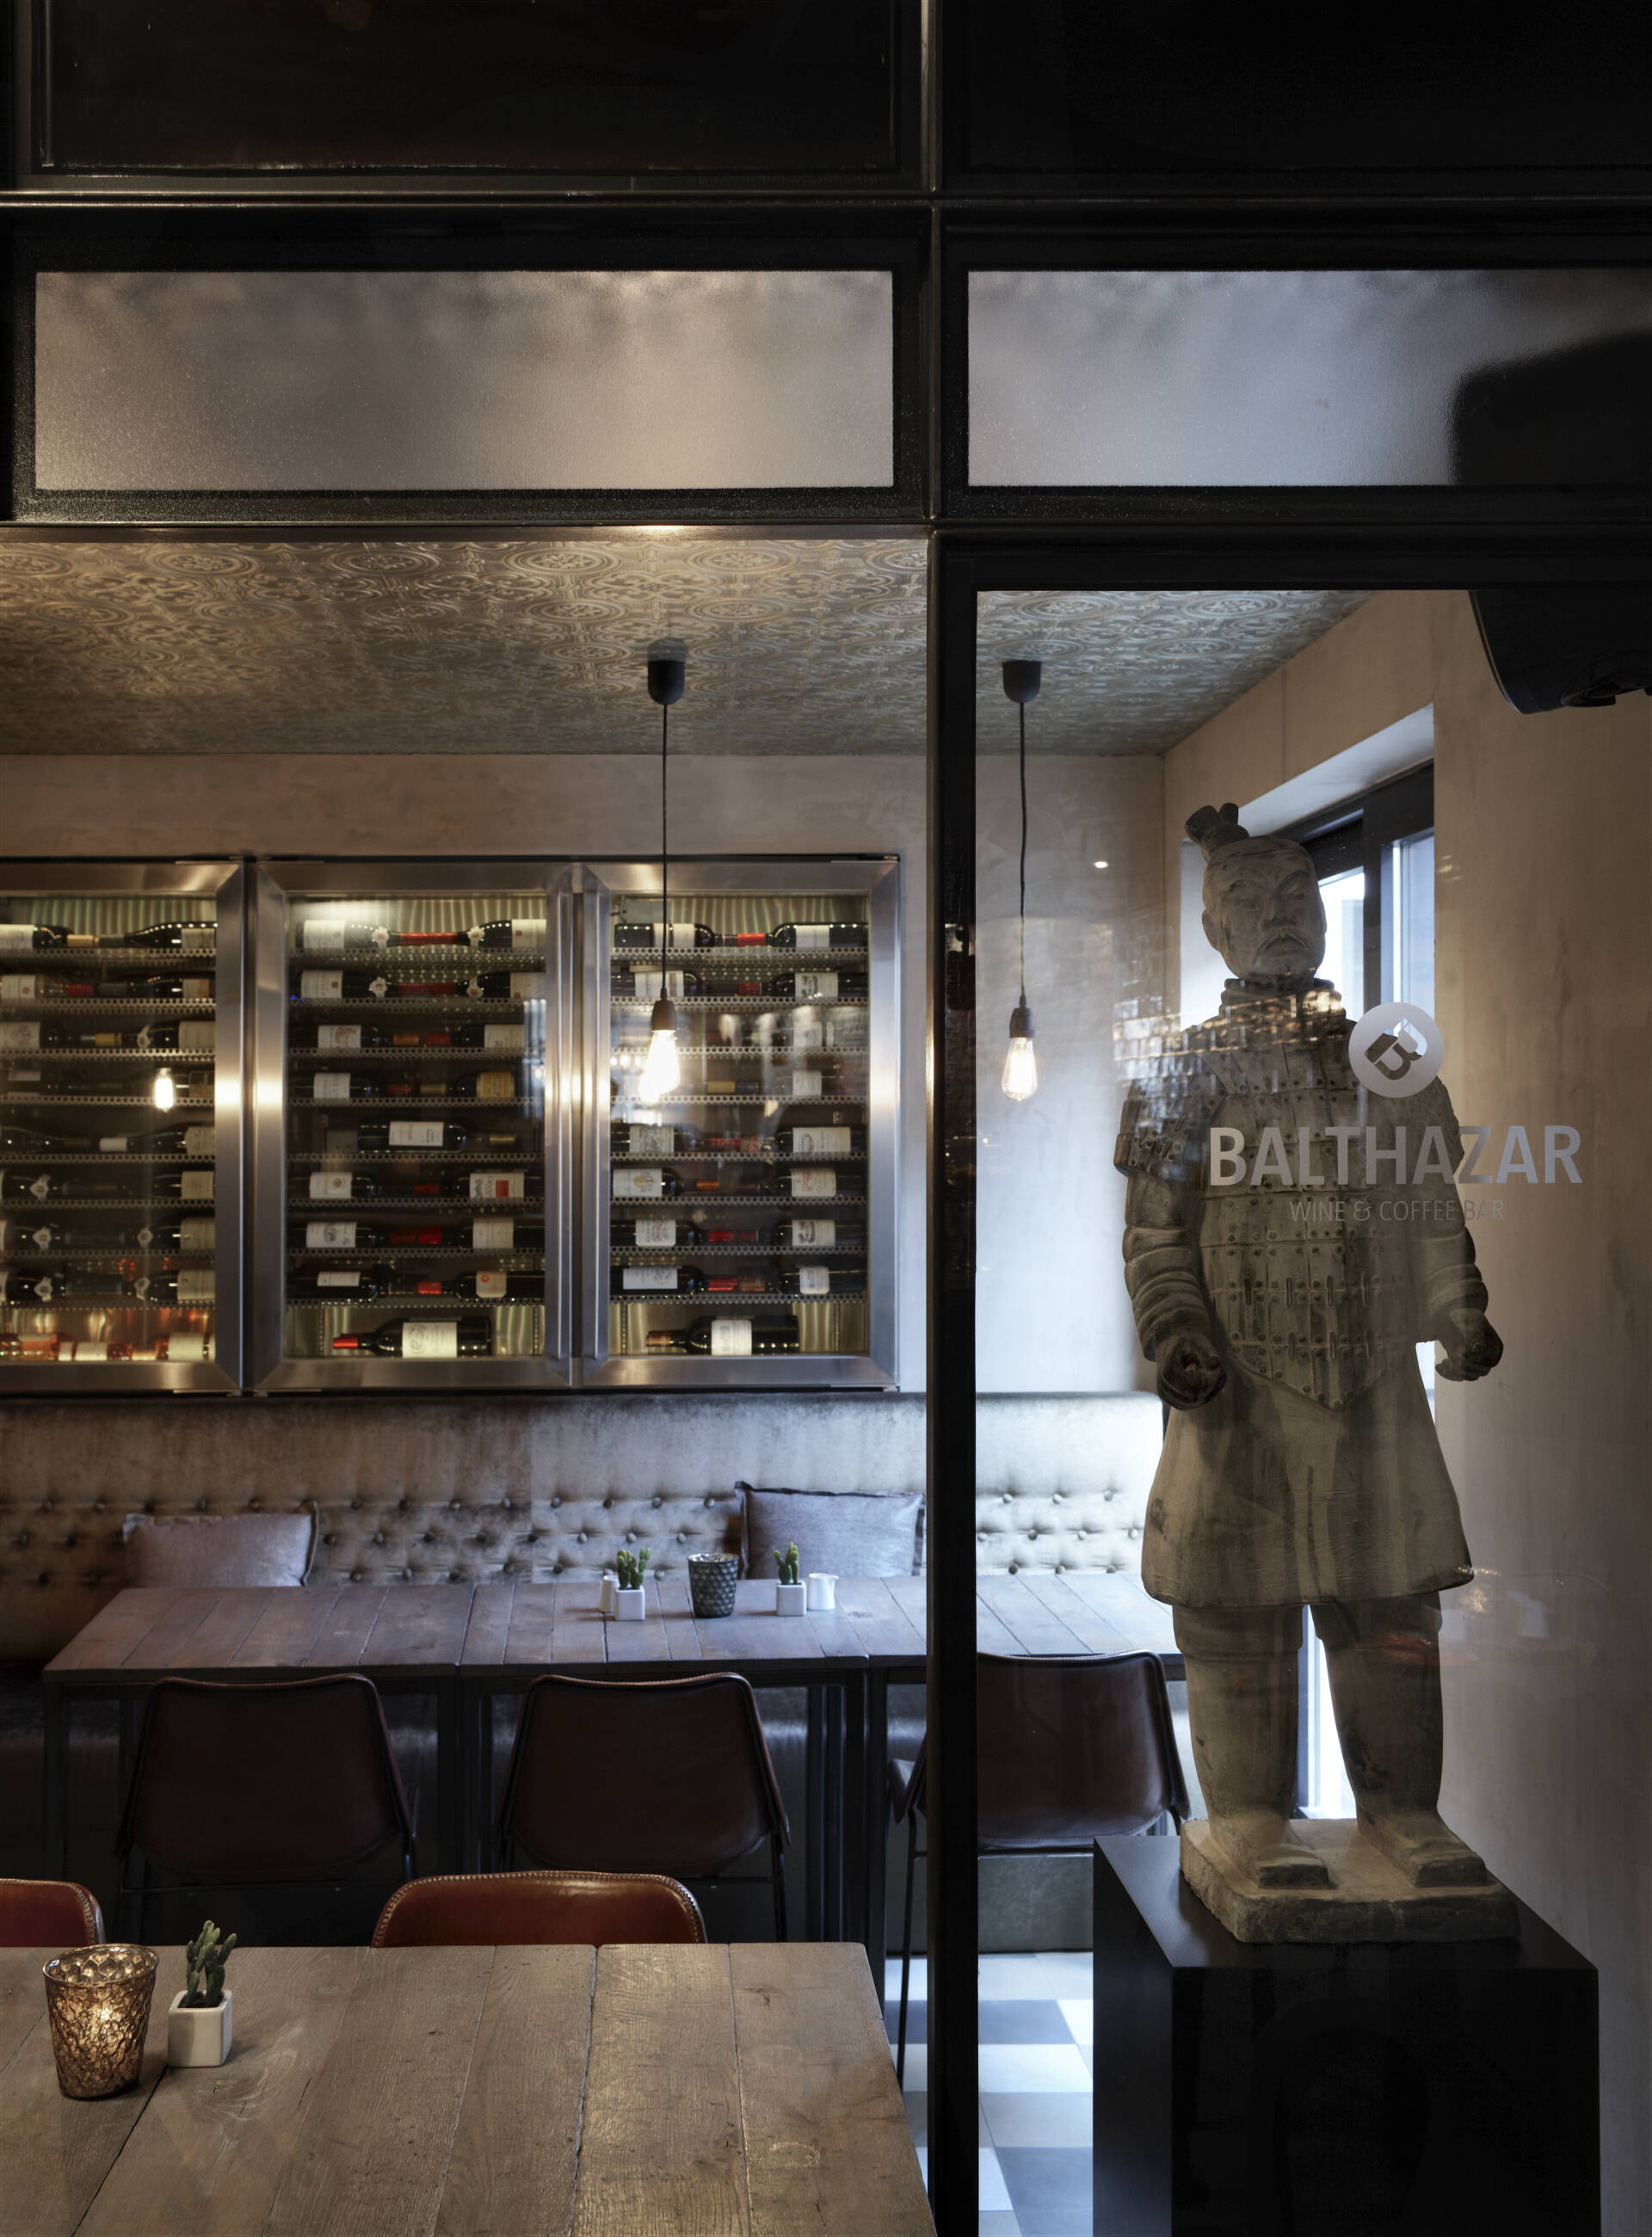 Balthazar wine bar